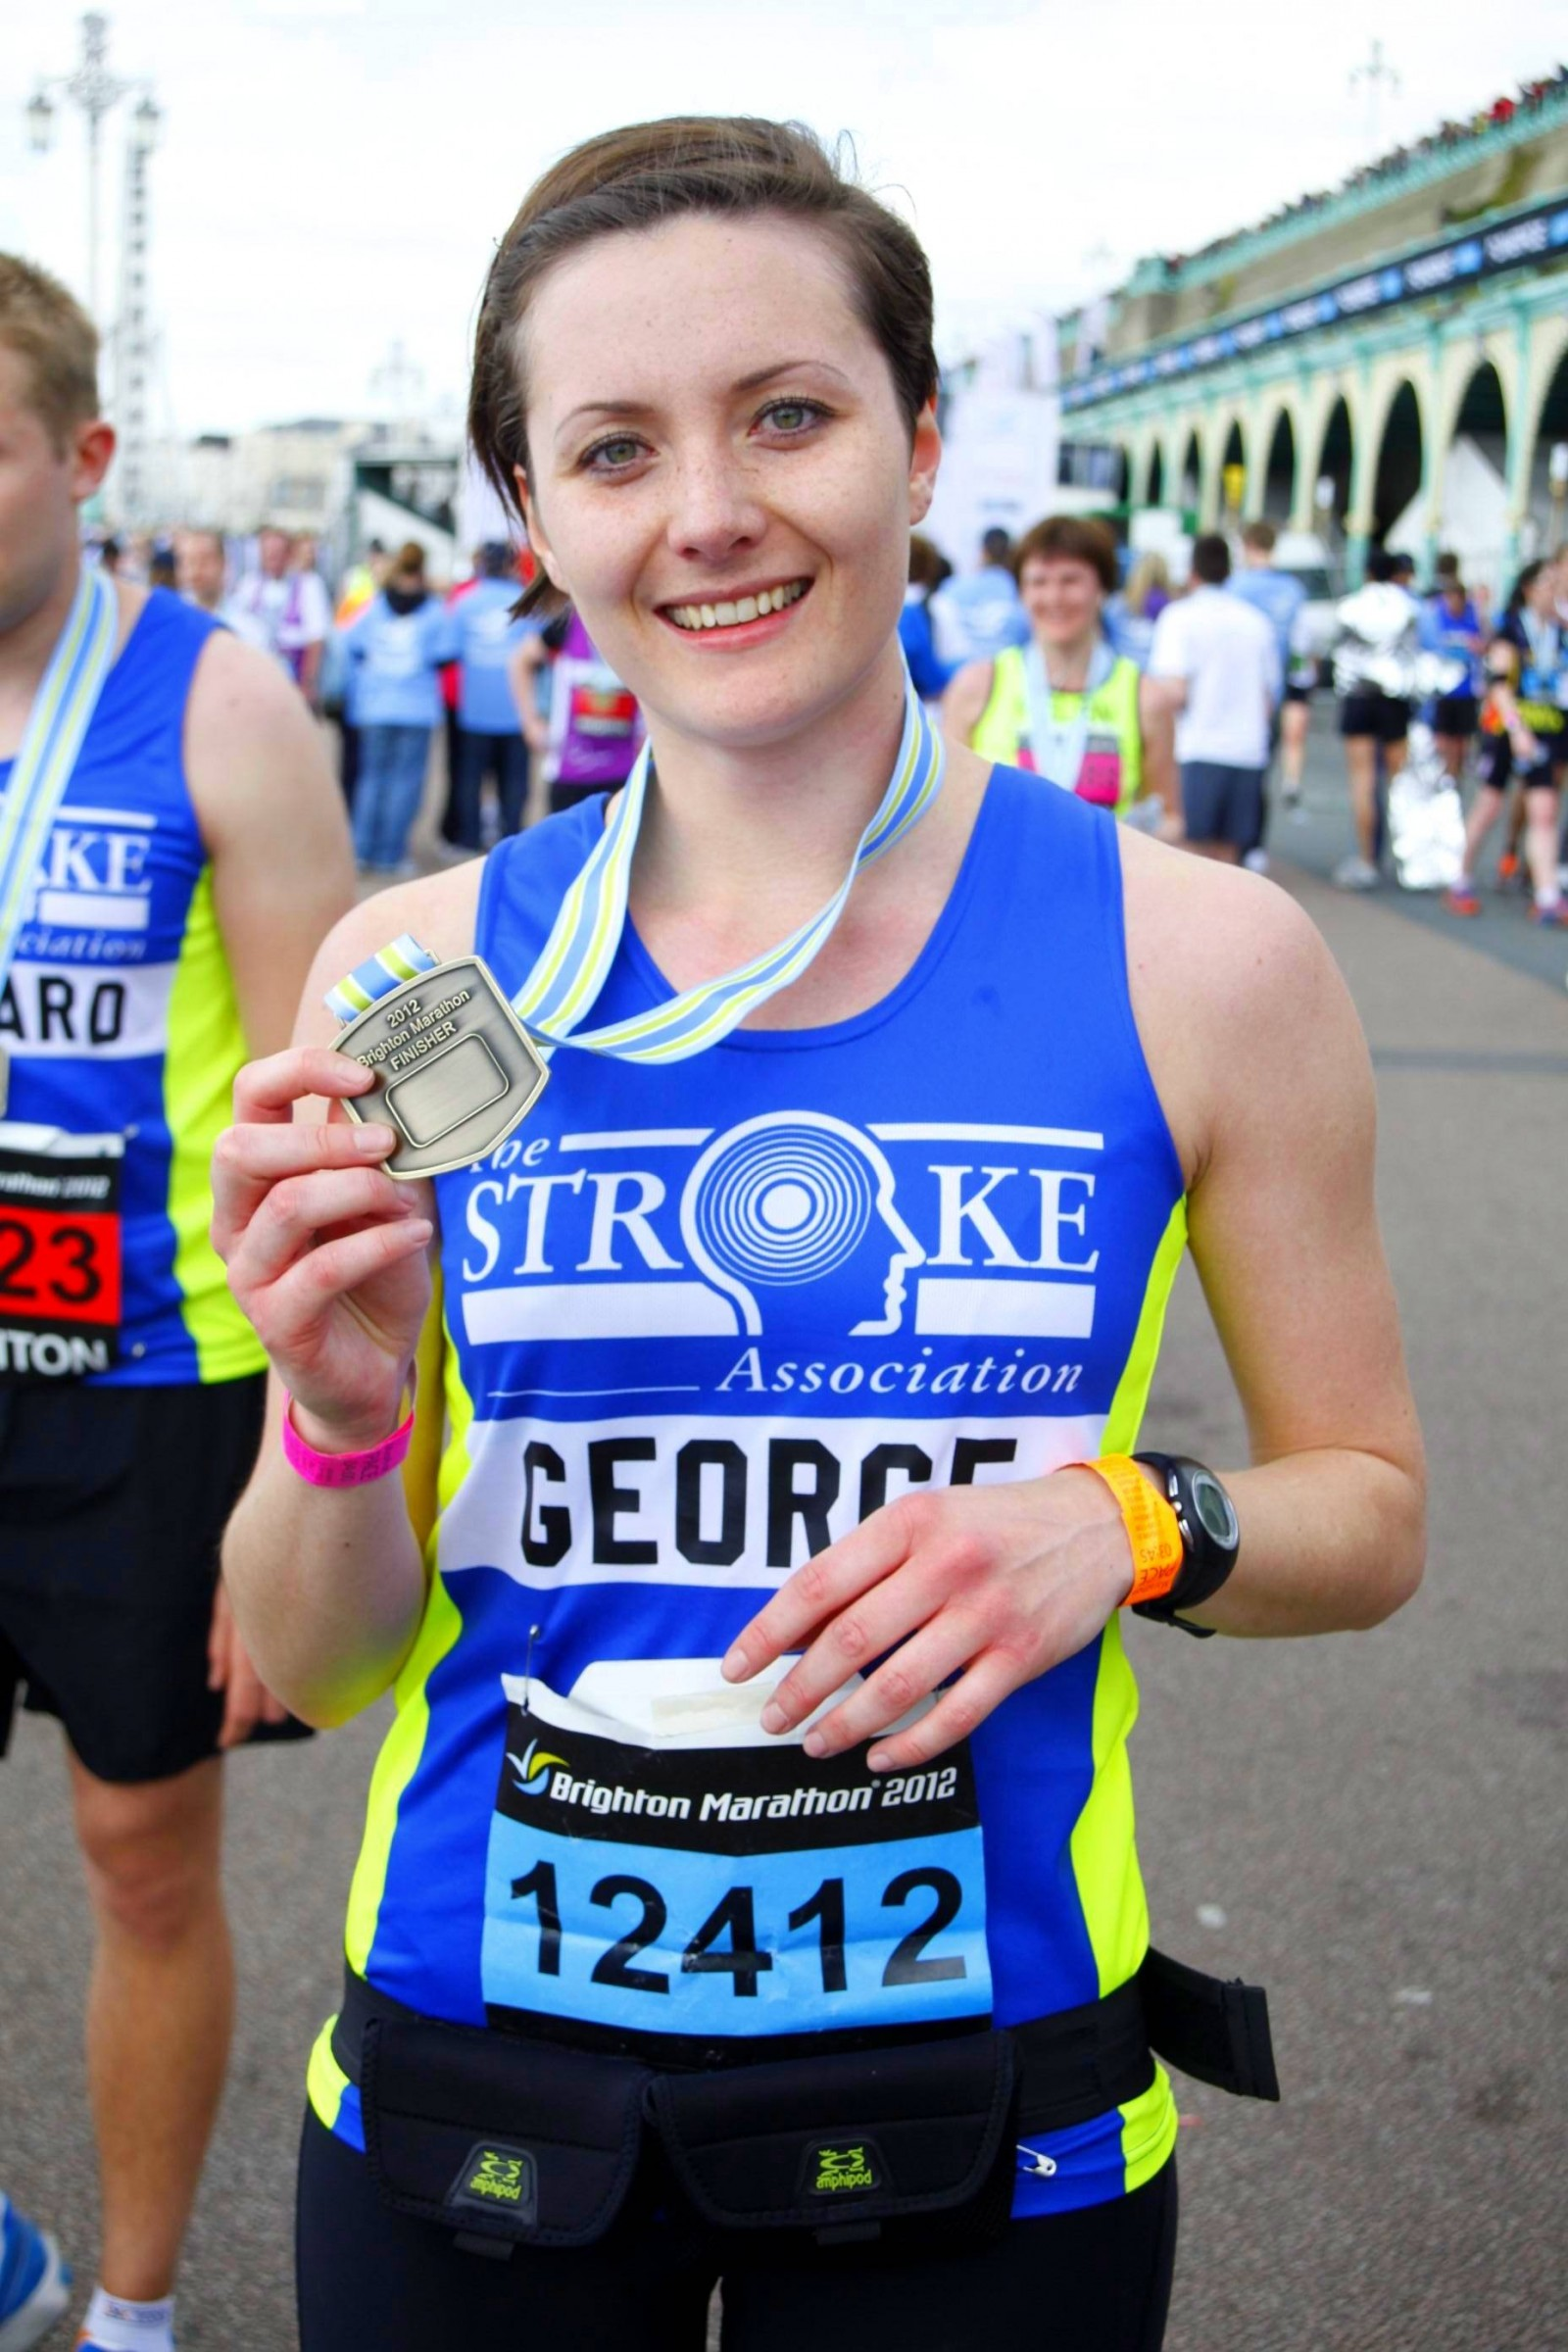 Brighton Marathon for the Stroke Association